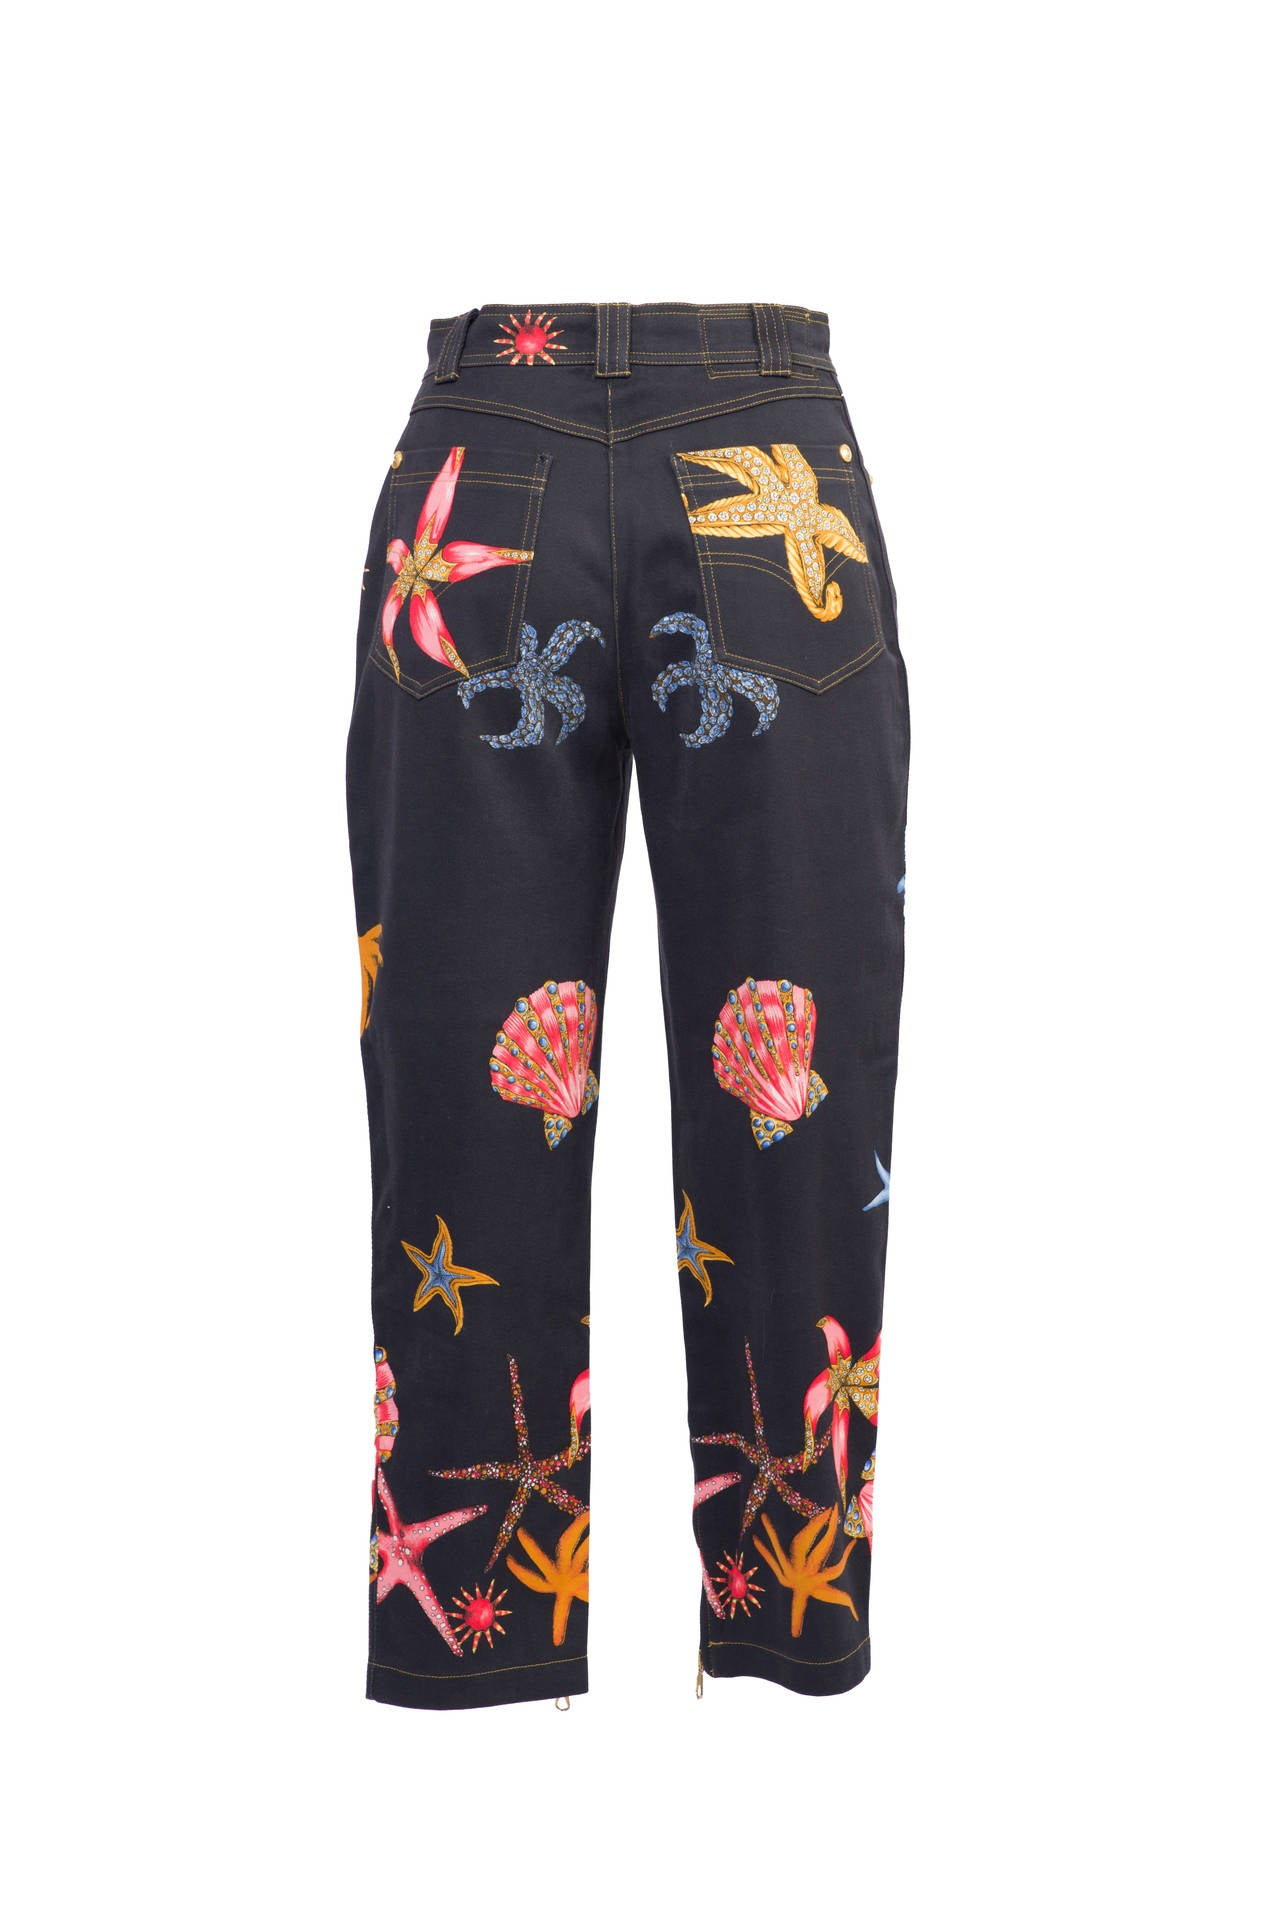 1990s Gianni Versace Vintage Iconic Trousers 2